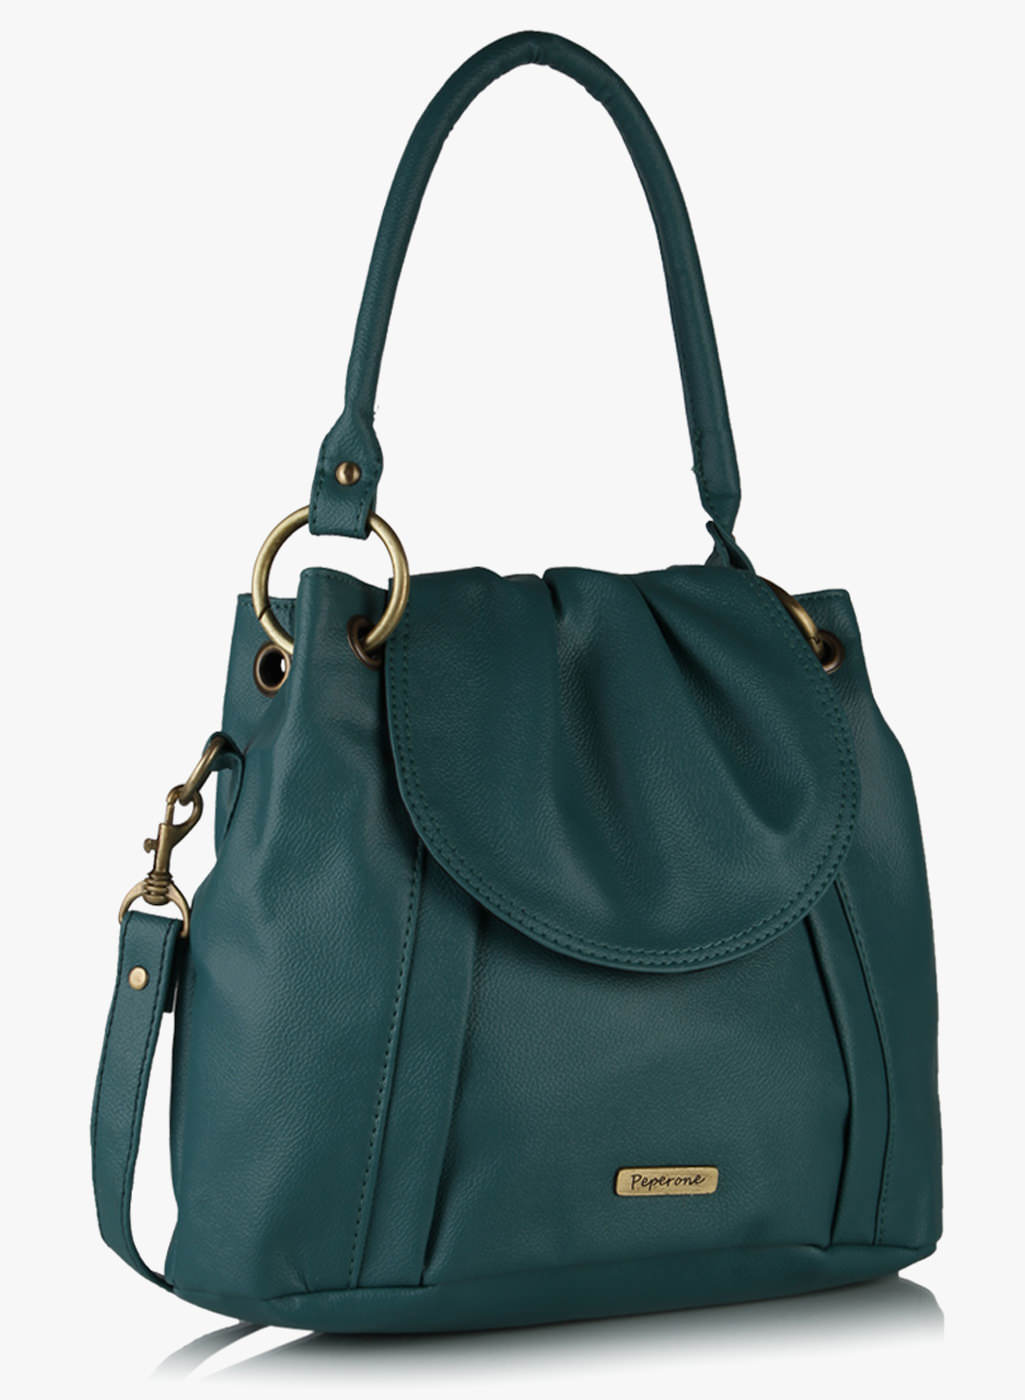 Peperone Baltic Aqua Blue Handbag